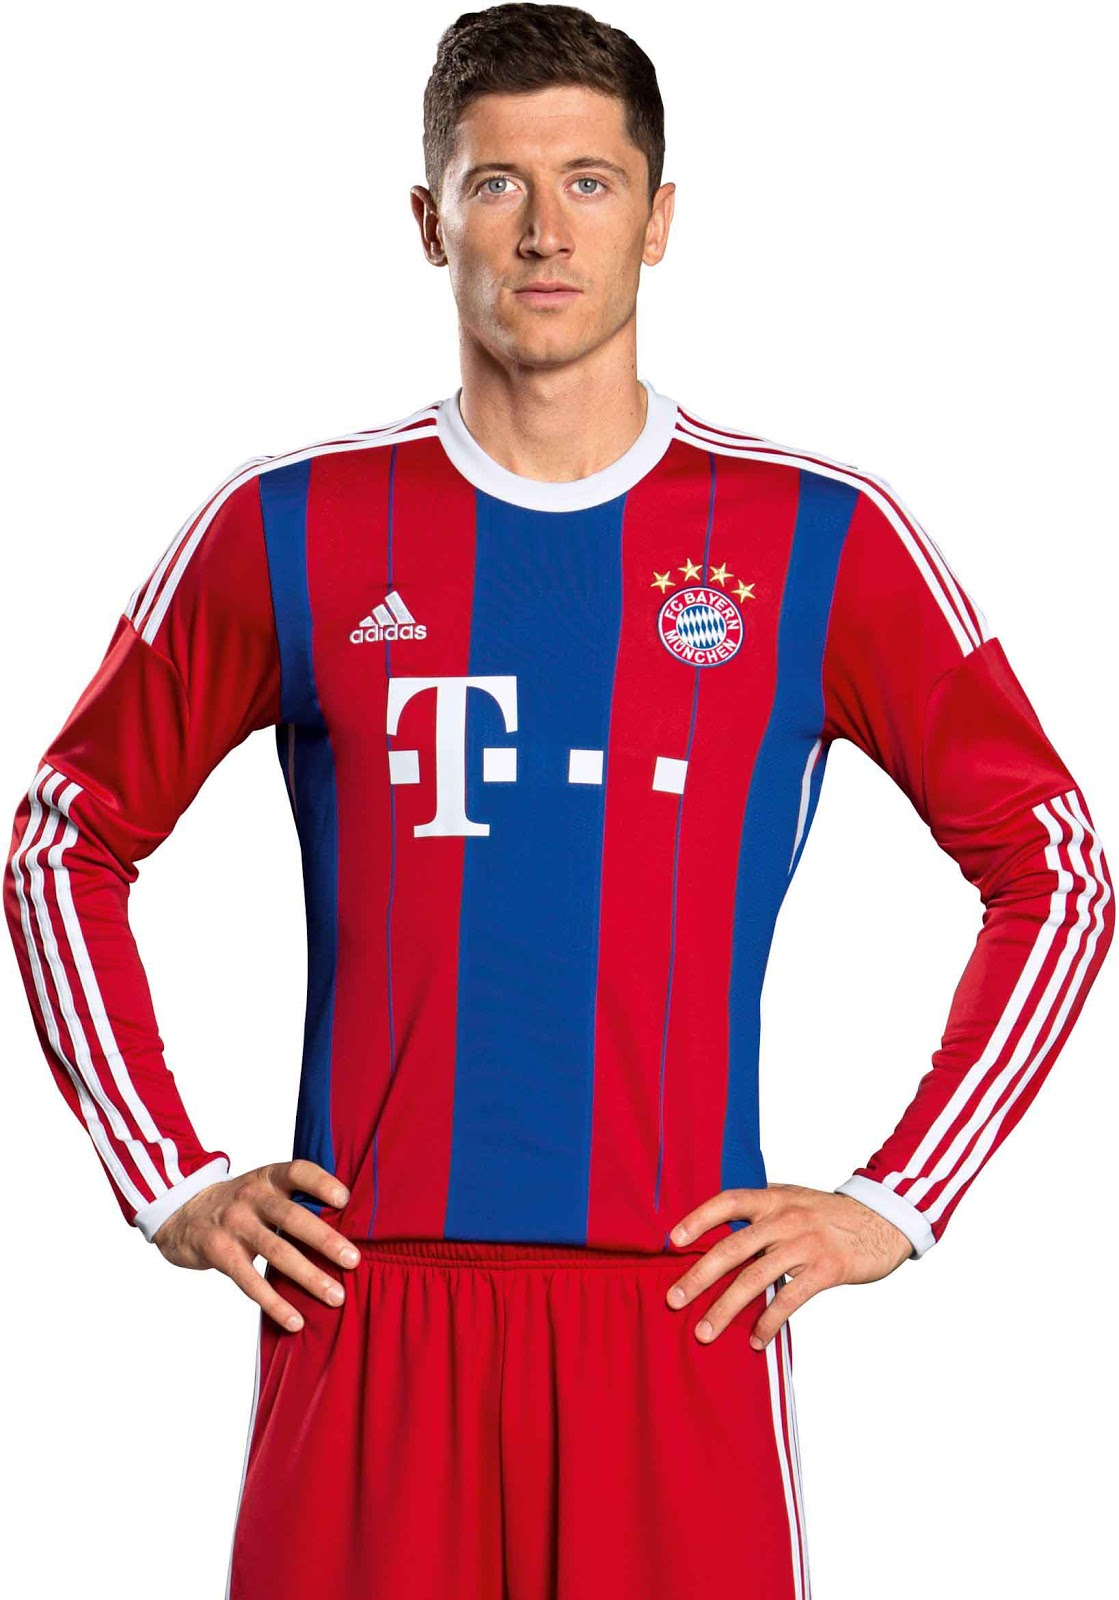 fc bayern m nchen 14 15 home away and third kits footy headlines. Black Bedroom Furniture Sets. Home Design Ideas